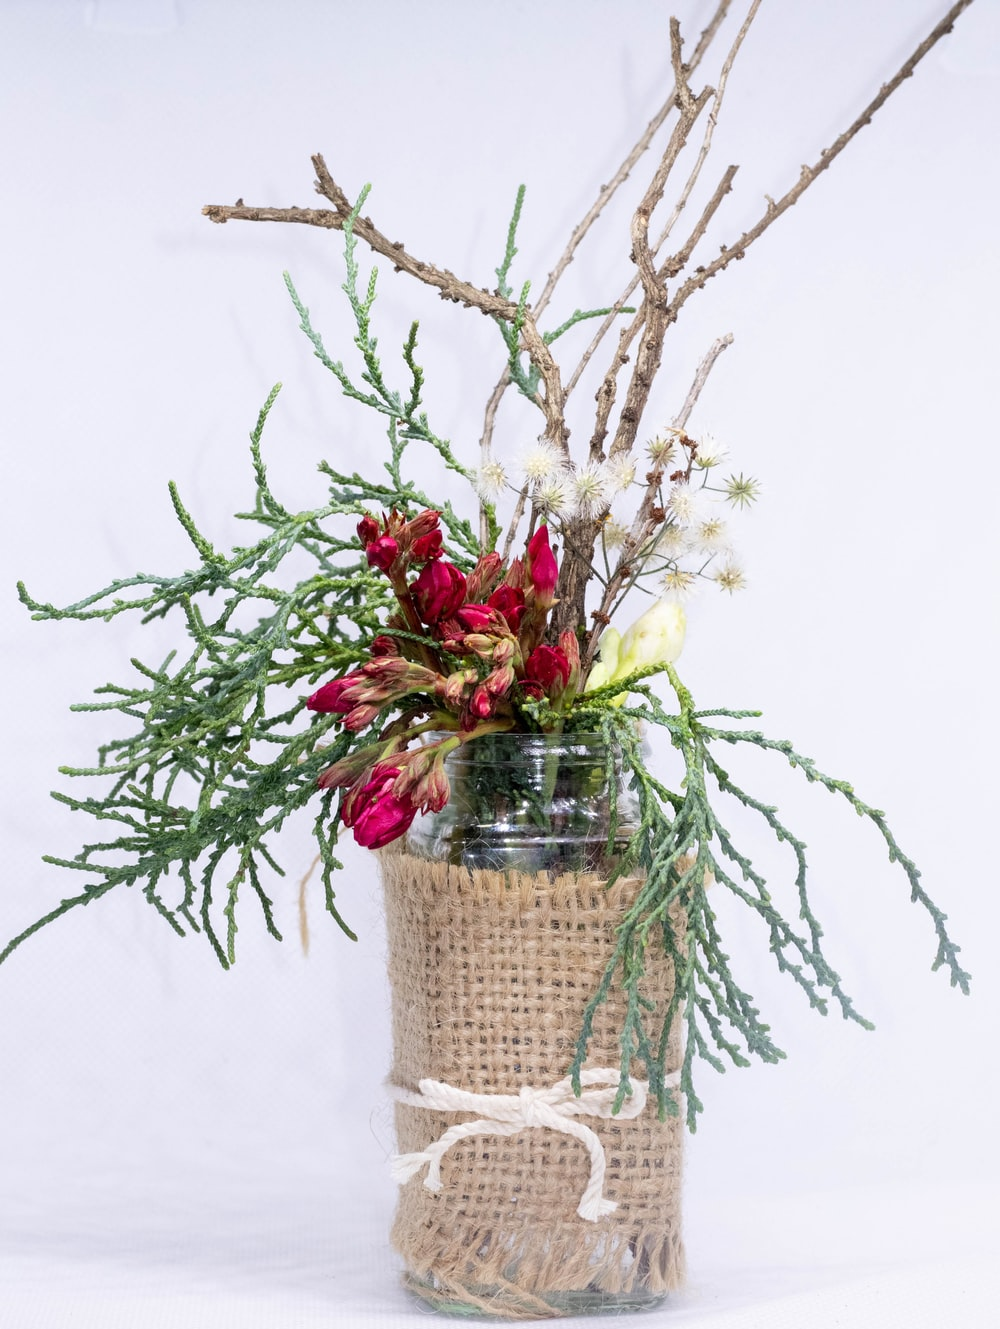 red and yellow roses in brown wicker basket